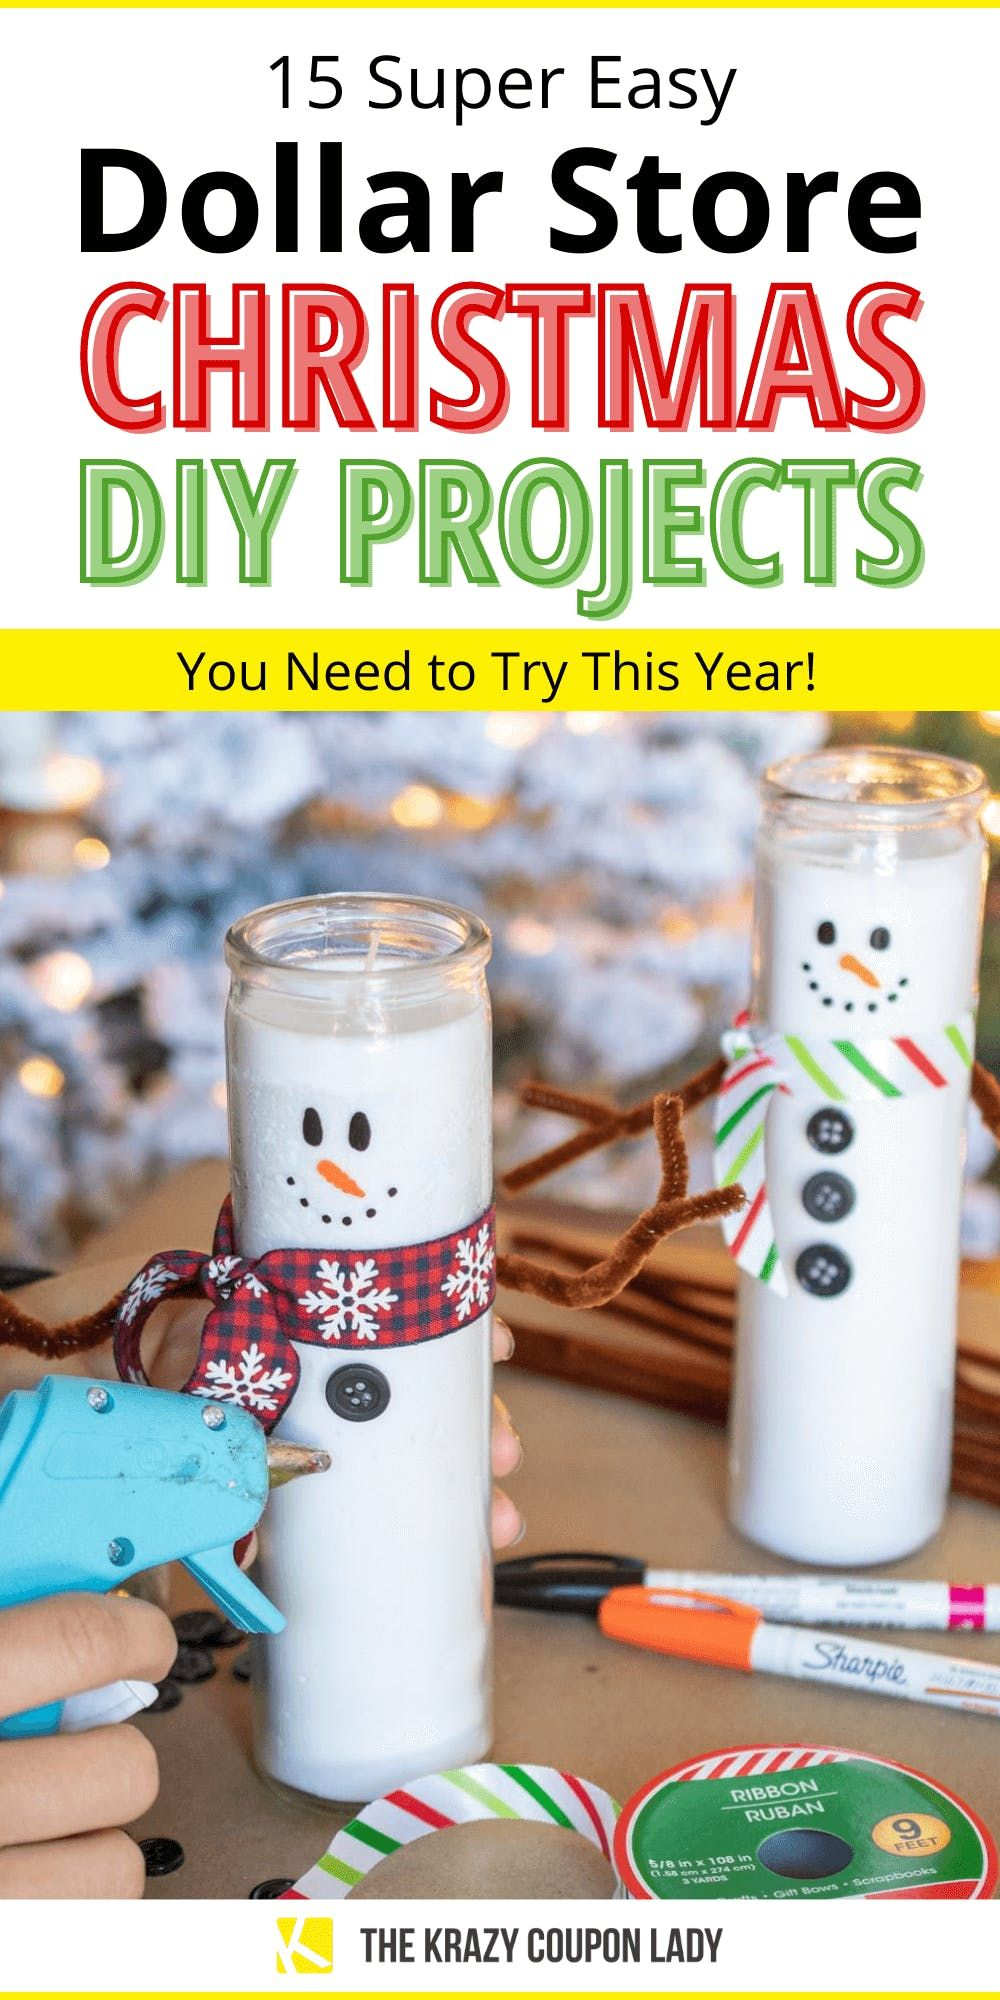 15 Dollar Store Christmas DIY Projects Anyone Can Do -   19 diy Decorations noel ideas